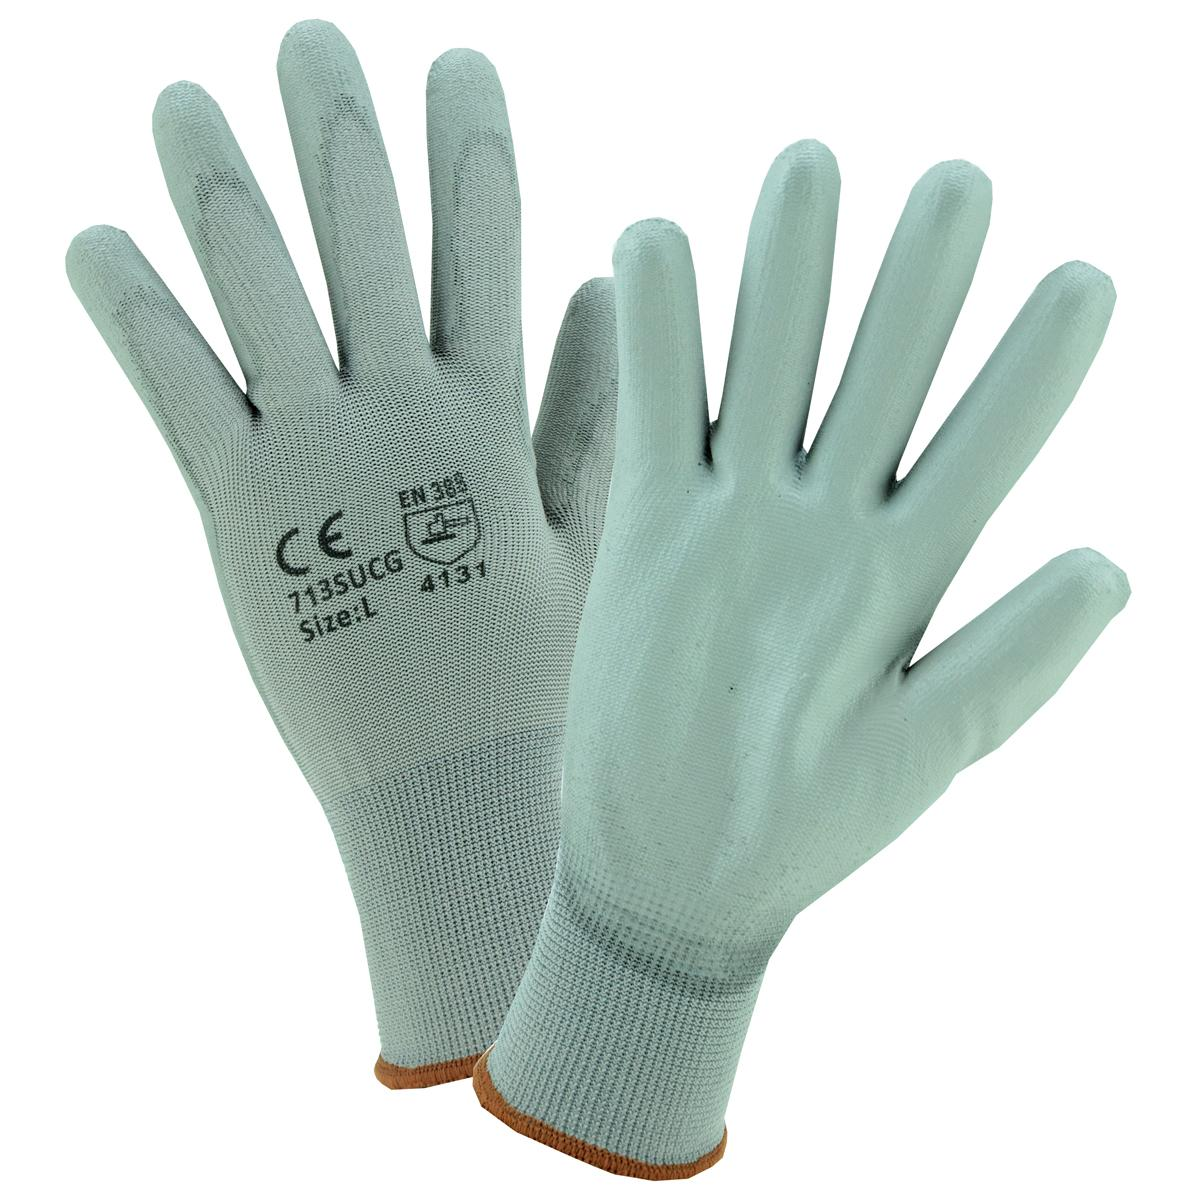 Glove Gray nylon shell with polyurethane, knit wrist, machine washable